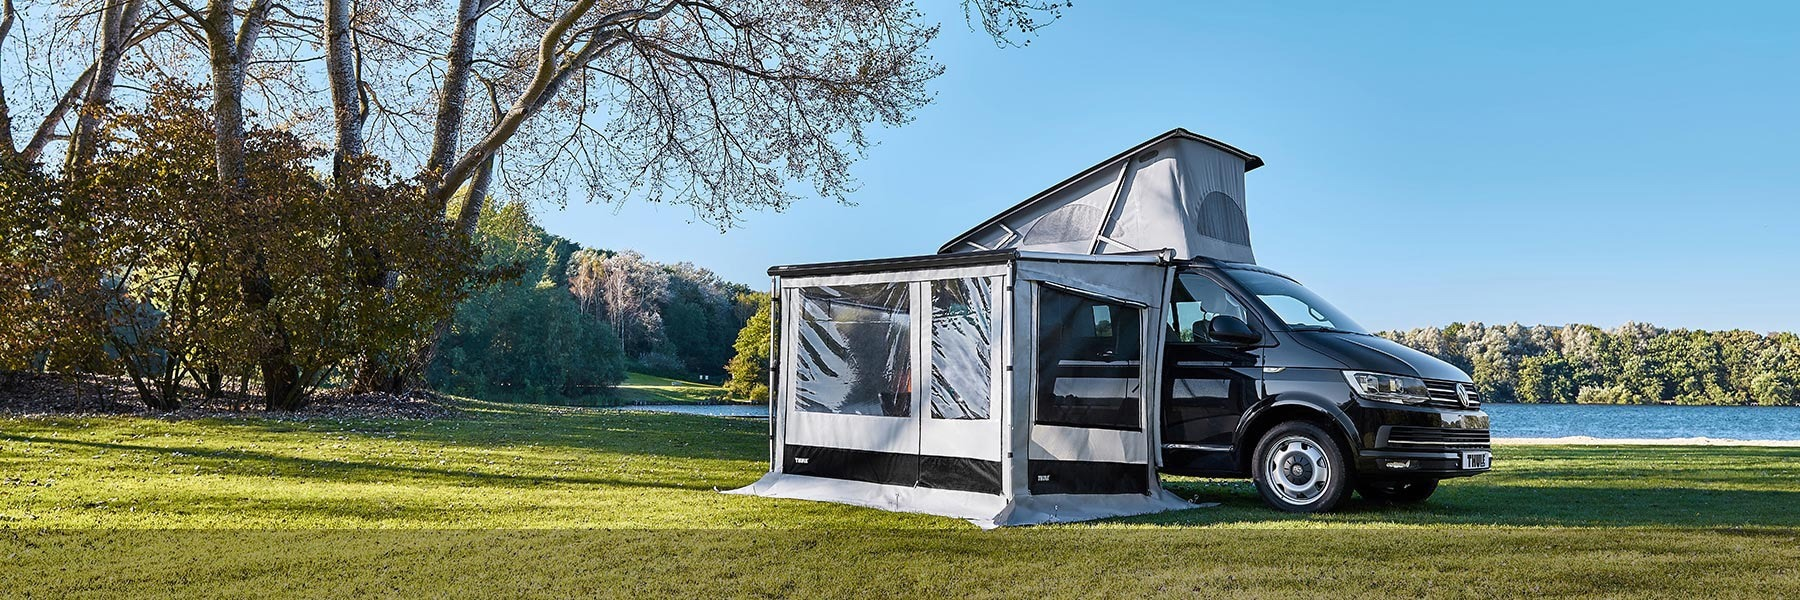 Thule Awnings, Thule Campervan